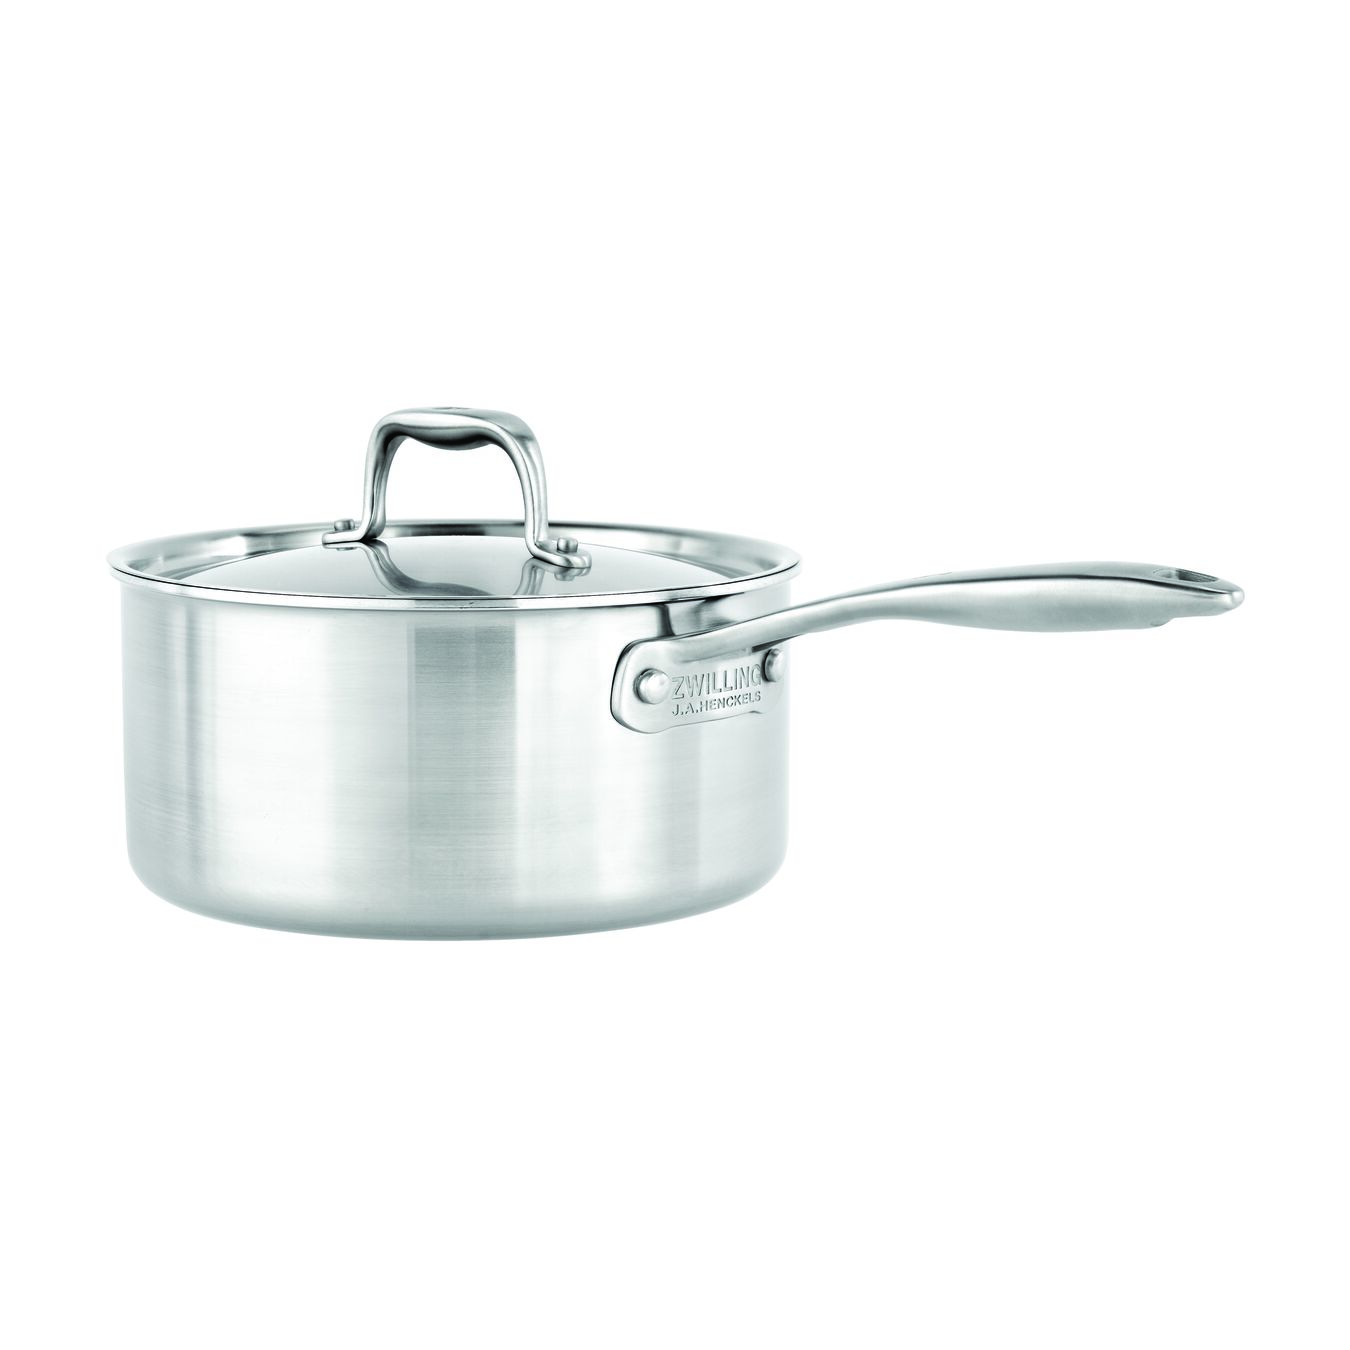 3.8L18/10 STAINLESS STEEL CERAMIC NON-STICK SAUCE PAN,,large 1